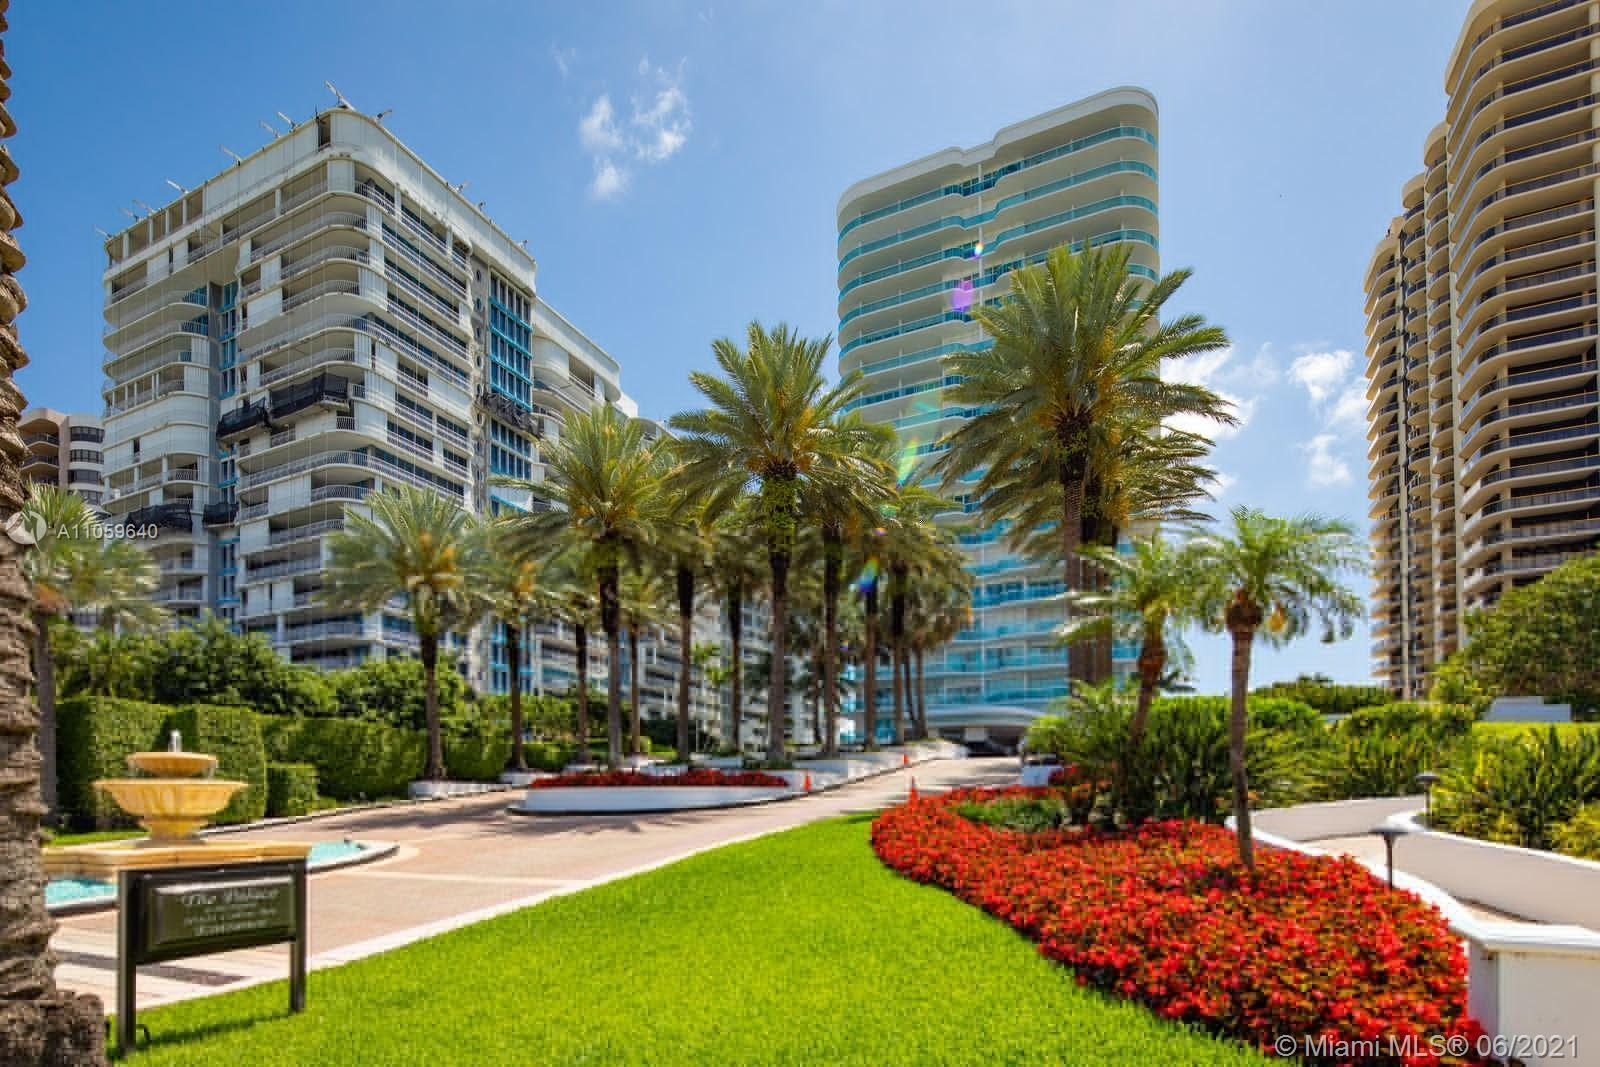 THE PALACE CONDO IN EXCLUSIVE BAL HARBOUR - GREAT OCEAN AND BAY VIEWS FROM THIS 2 BEDROOM, 2 1/2 BAT